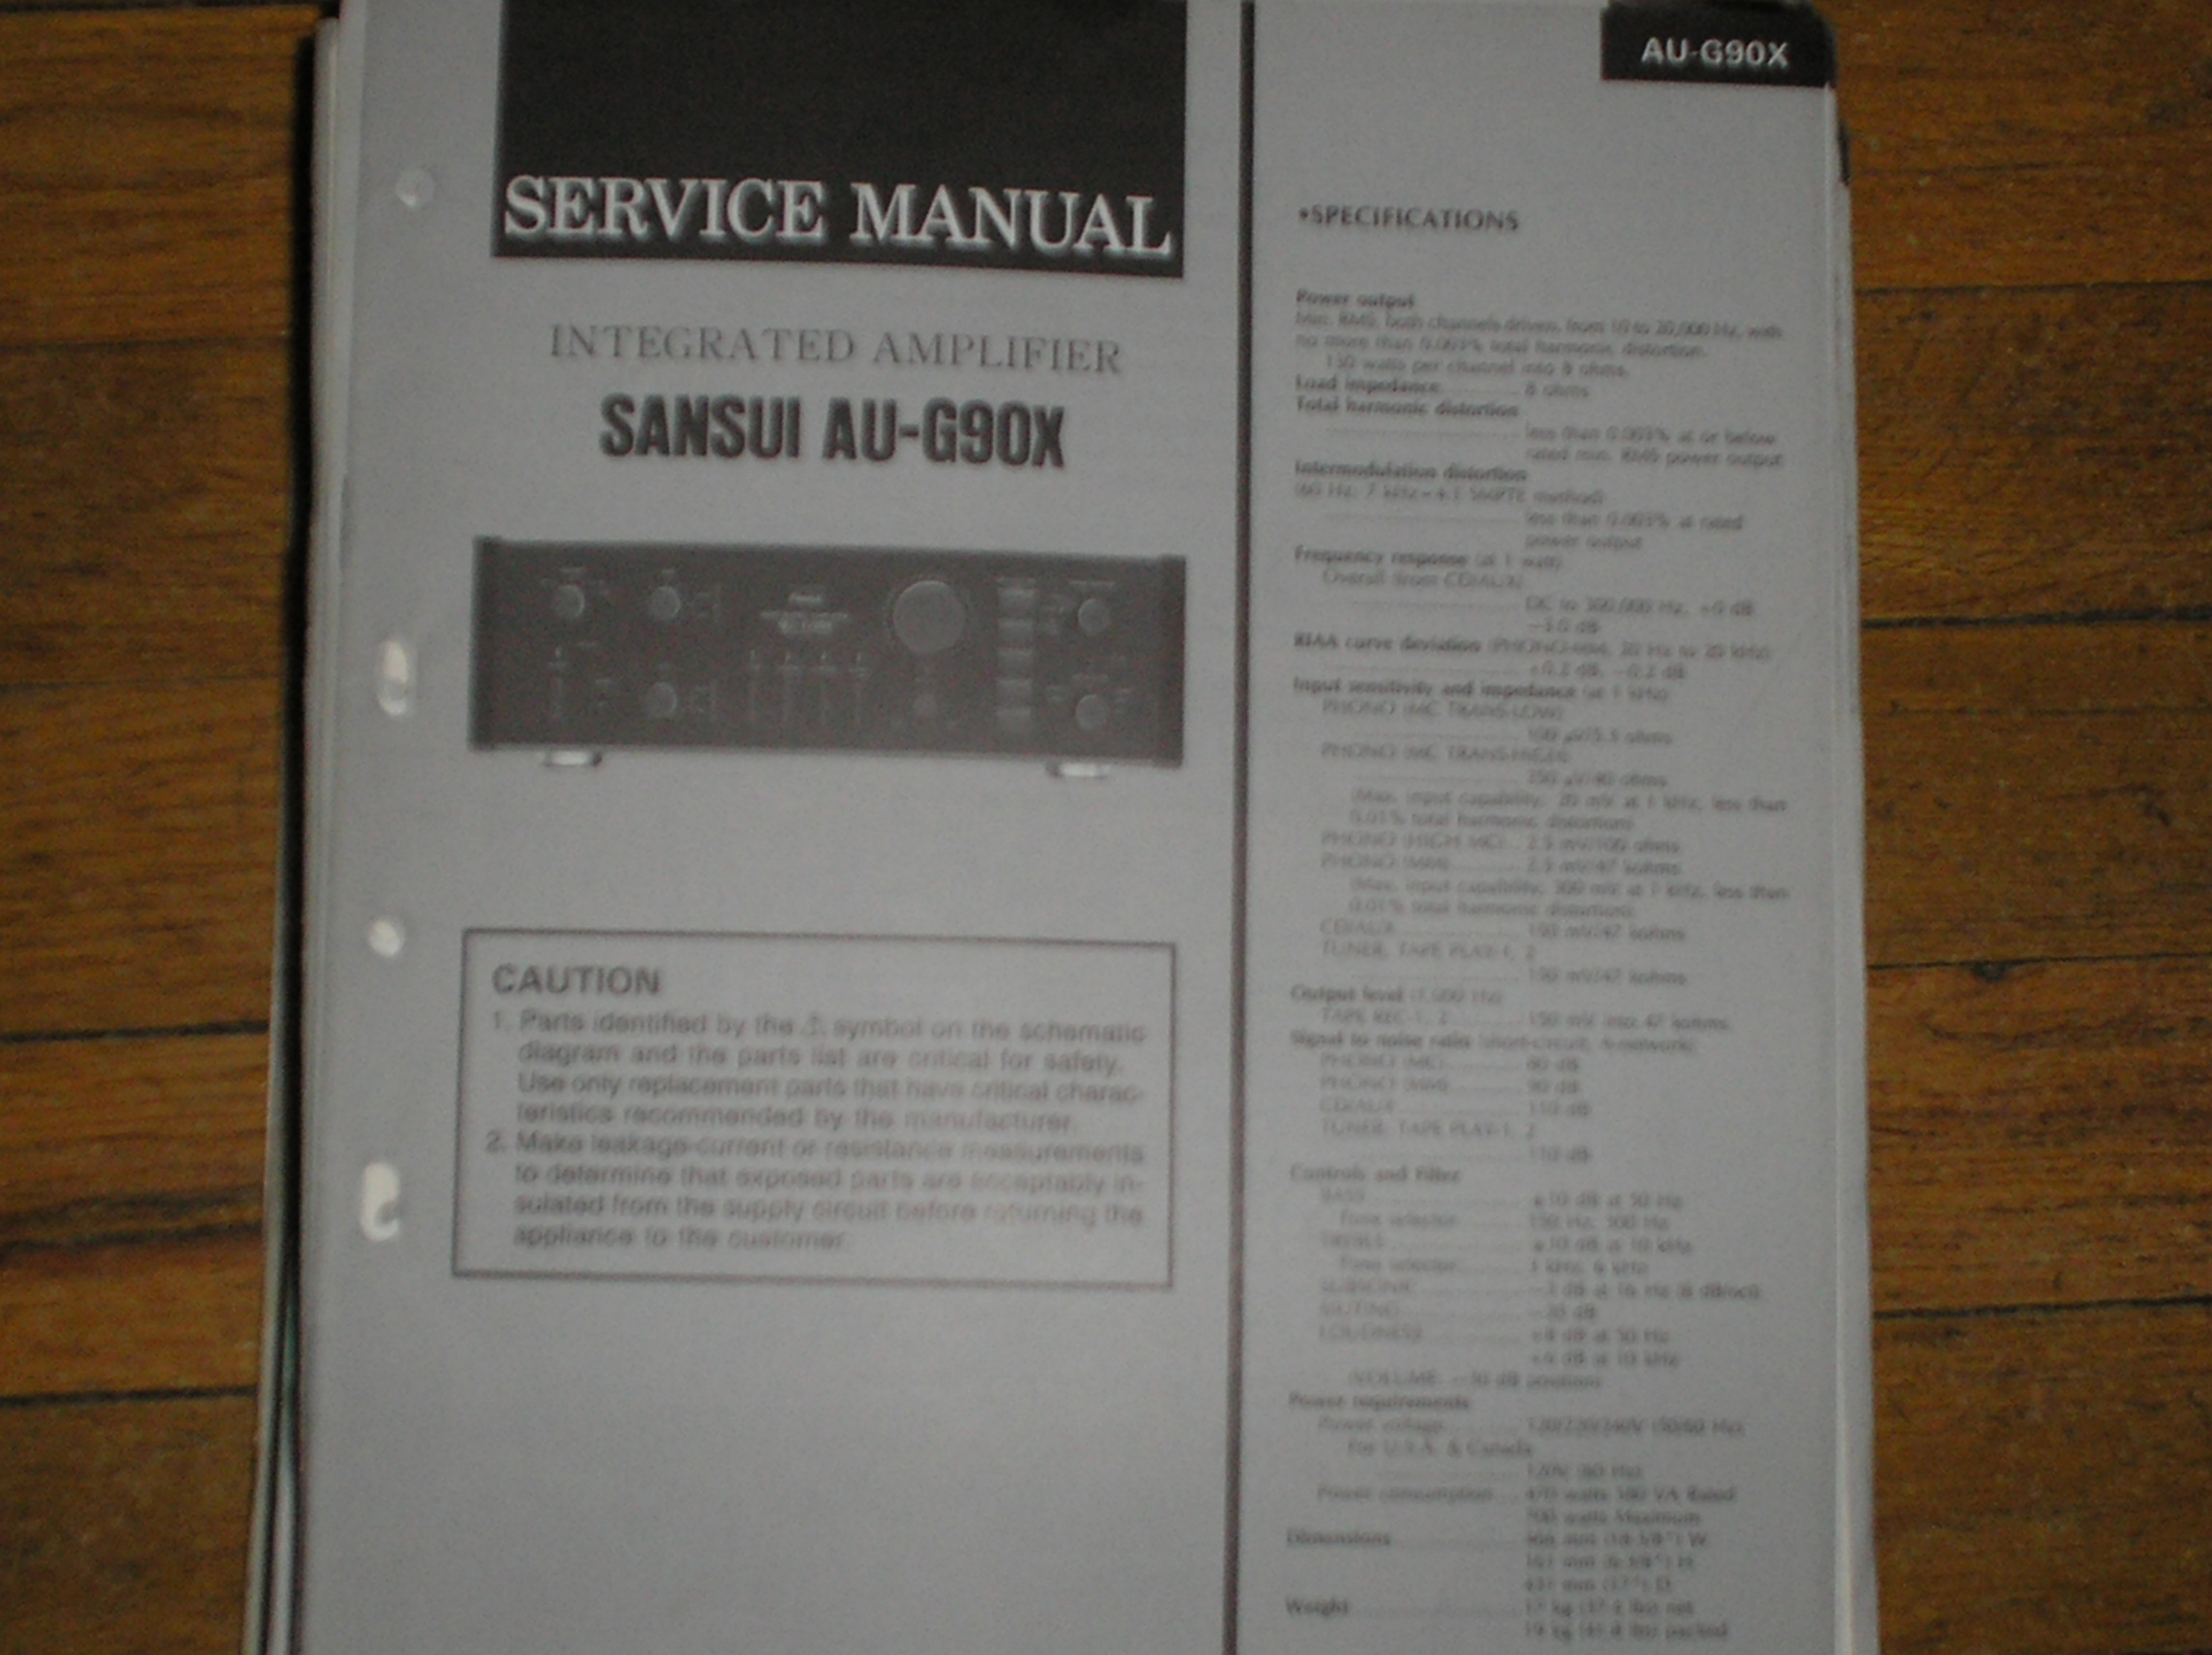 AU-G90X Amplifier Service Manual